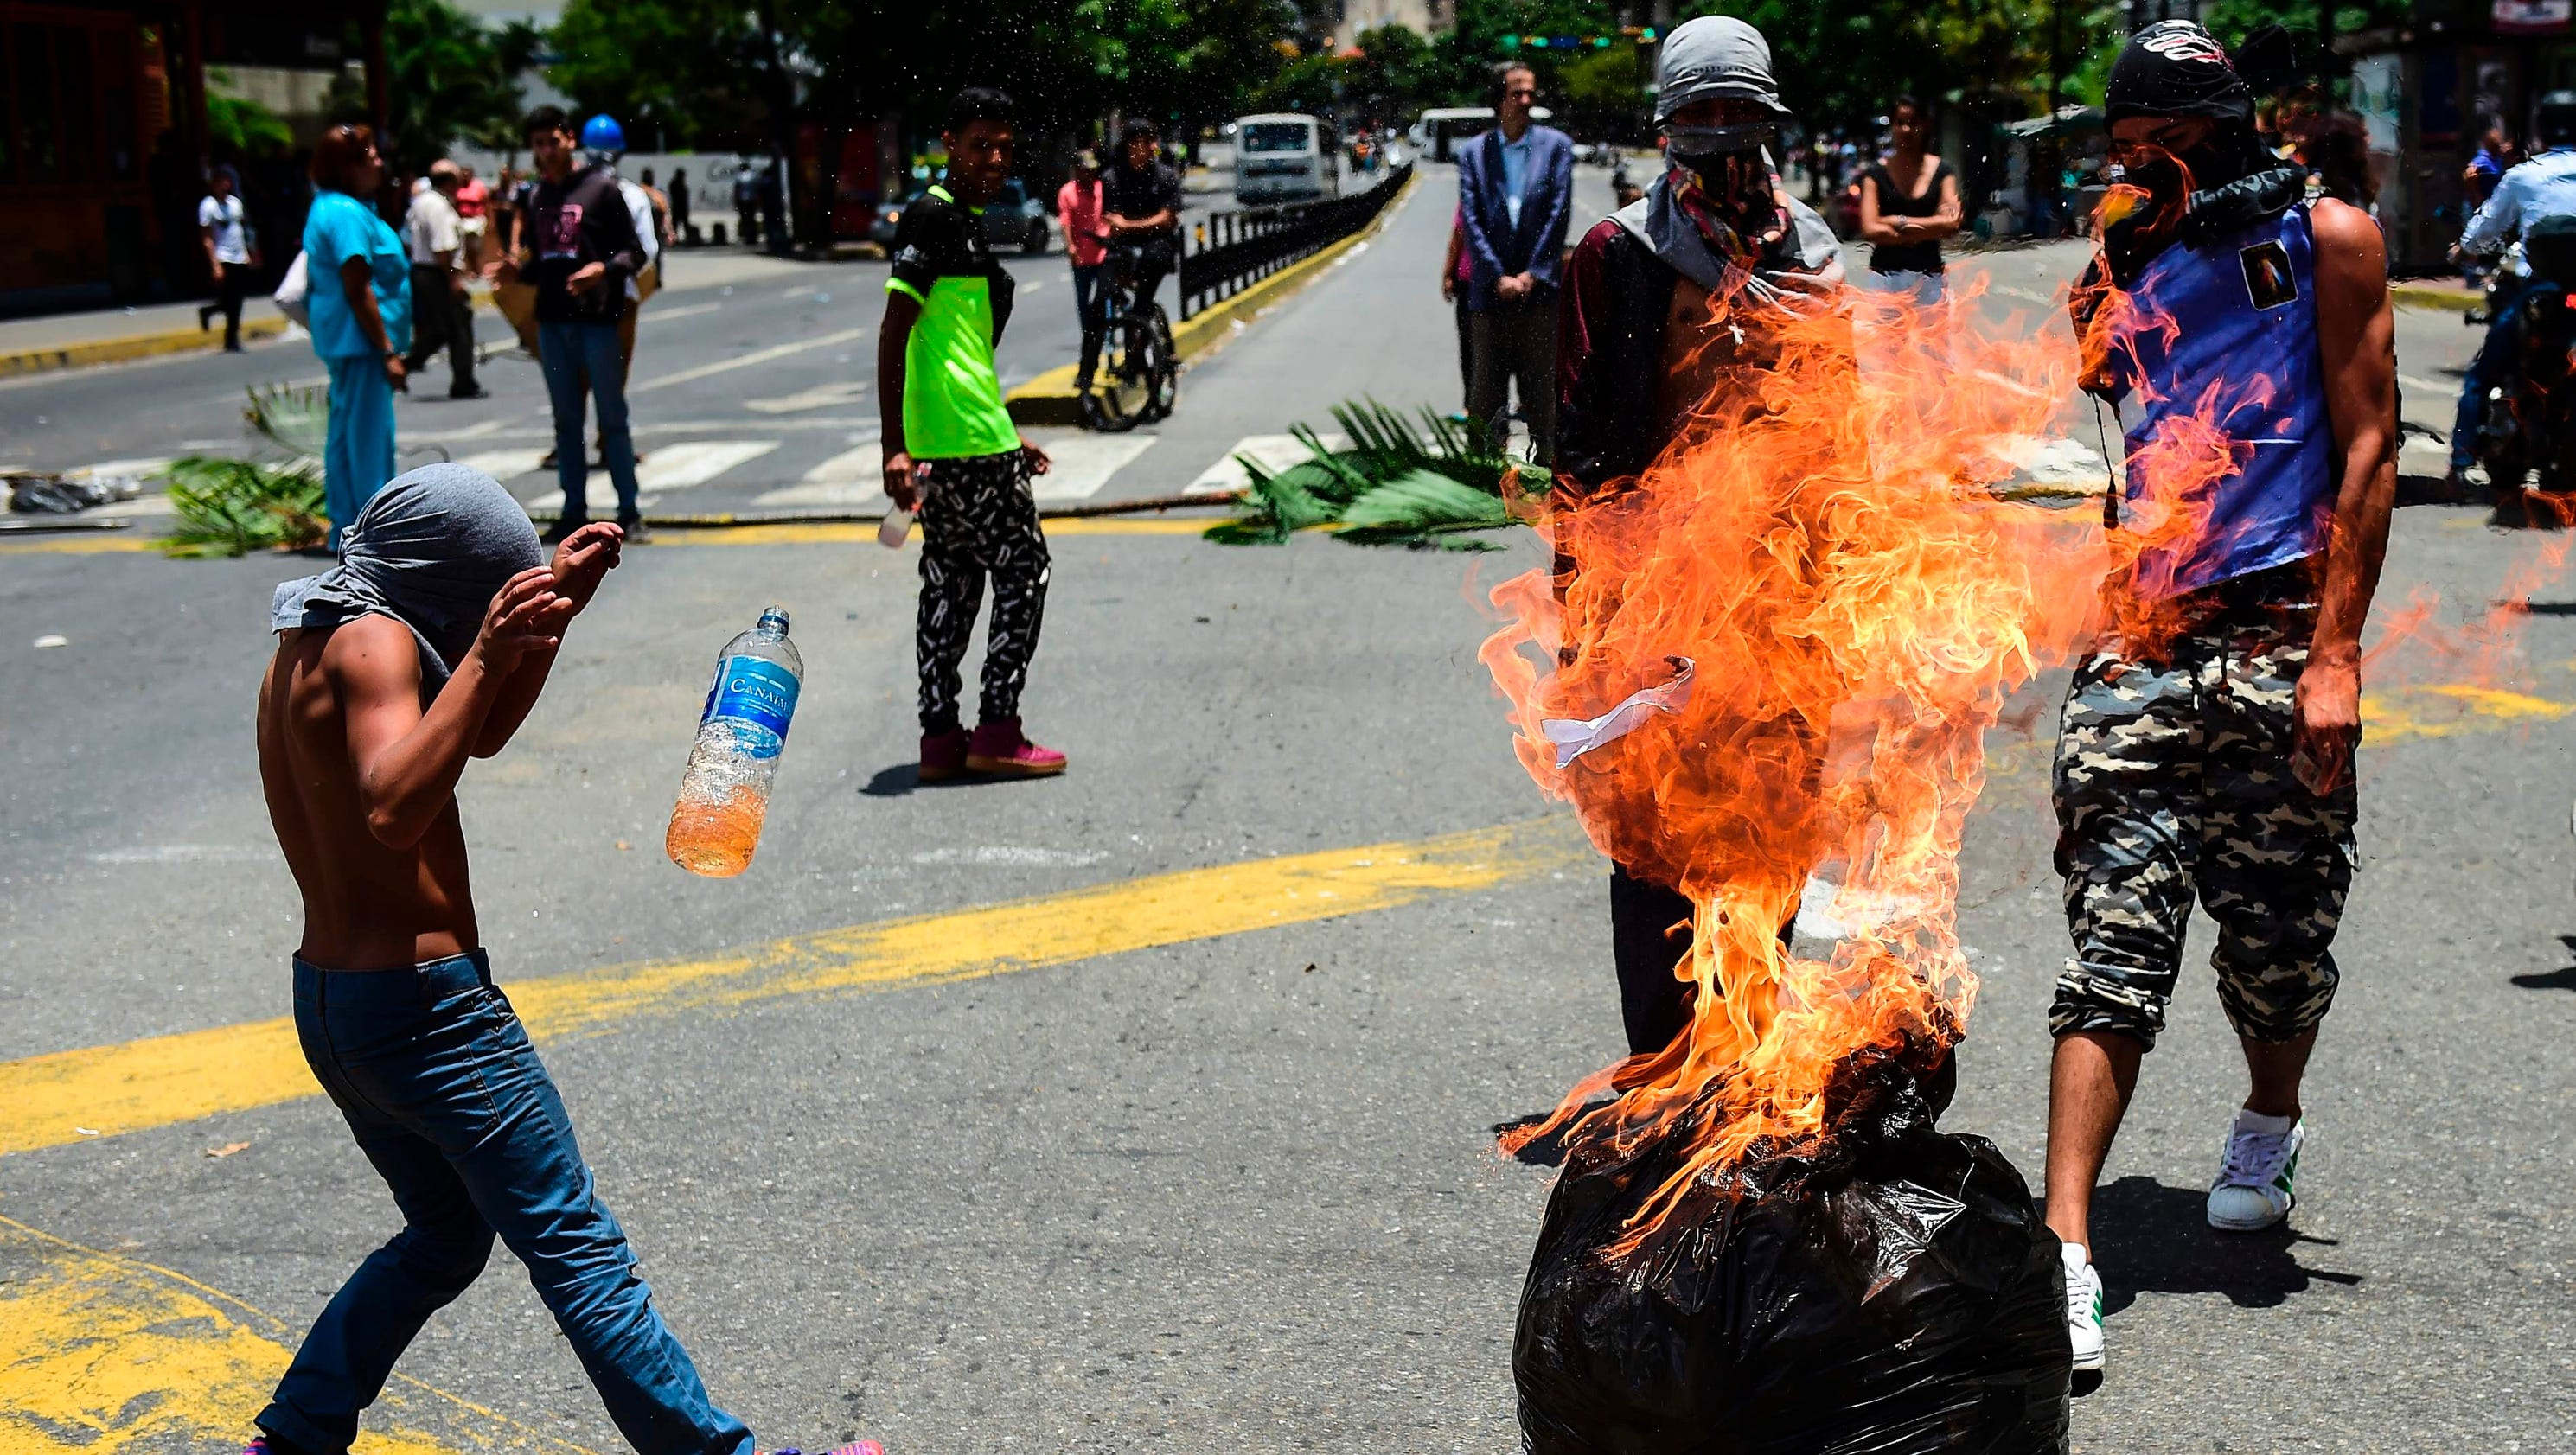 What the U.S. government should do about Venezuela: Nothing